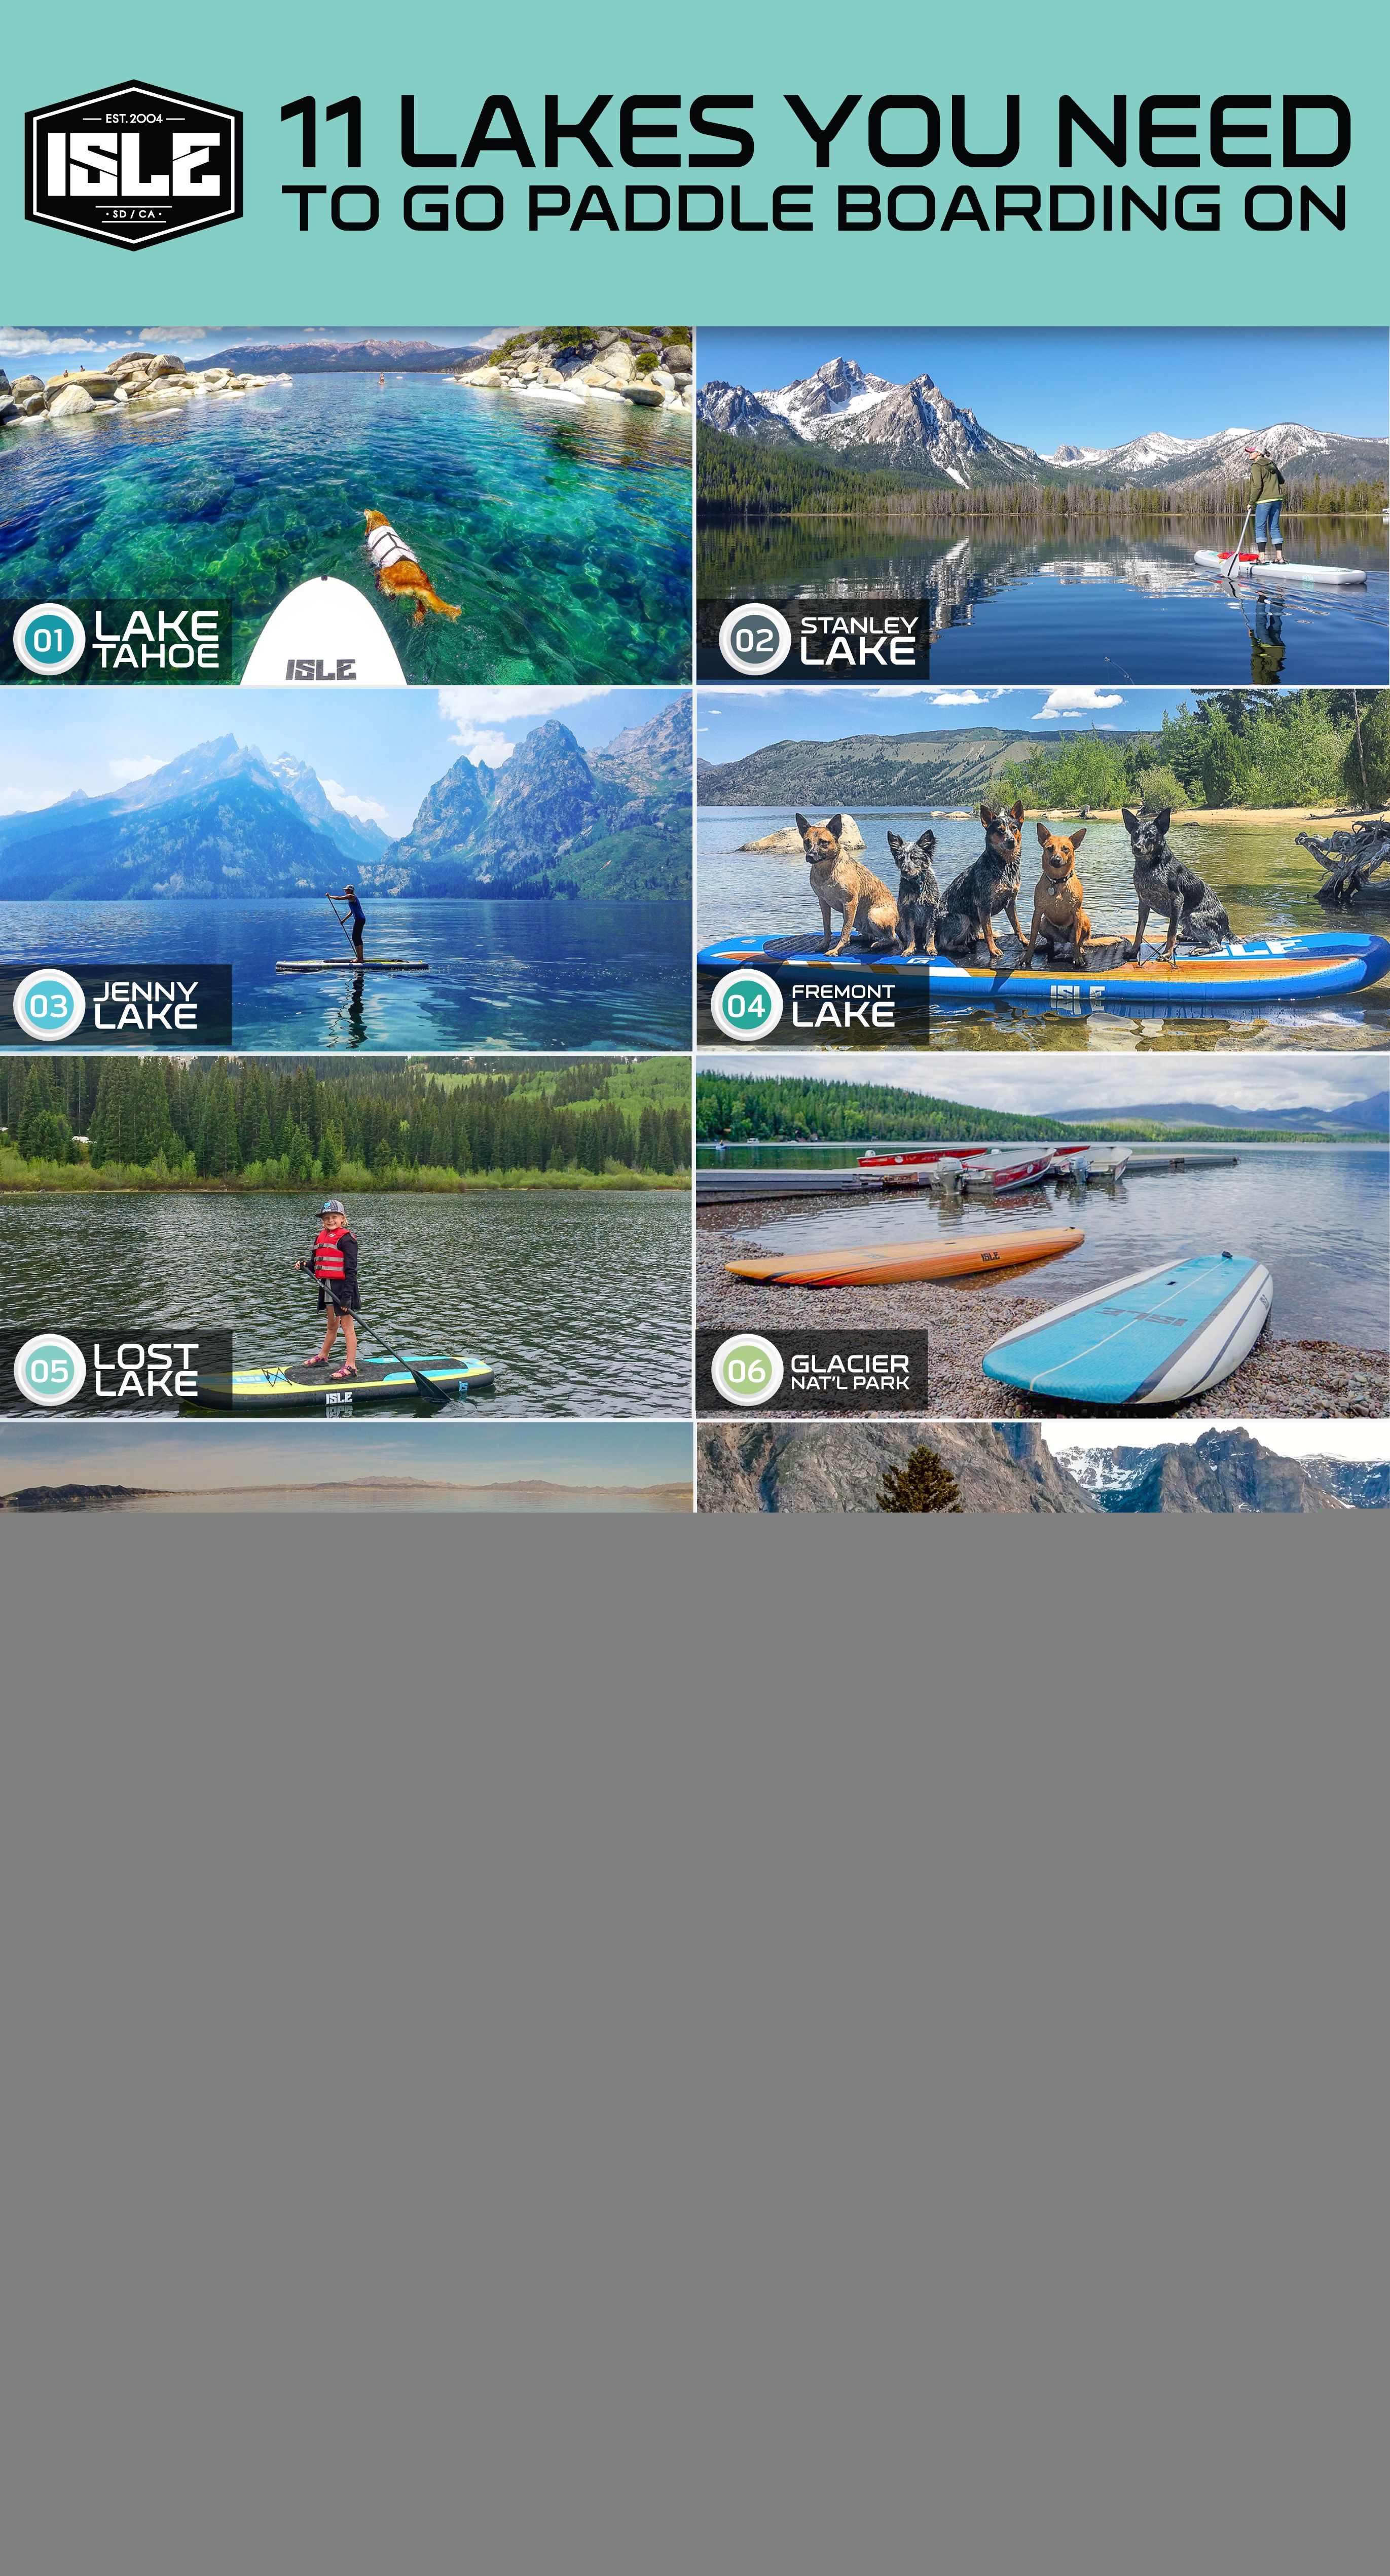 11 Lakes To Go Paddle Boarding In The Usa